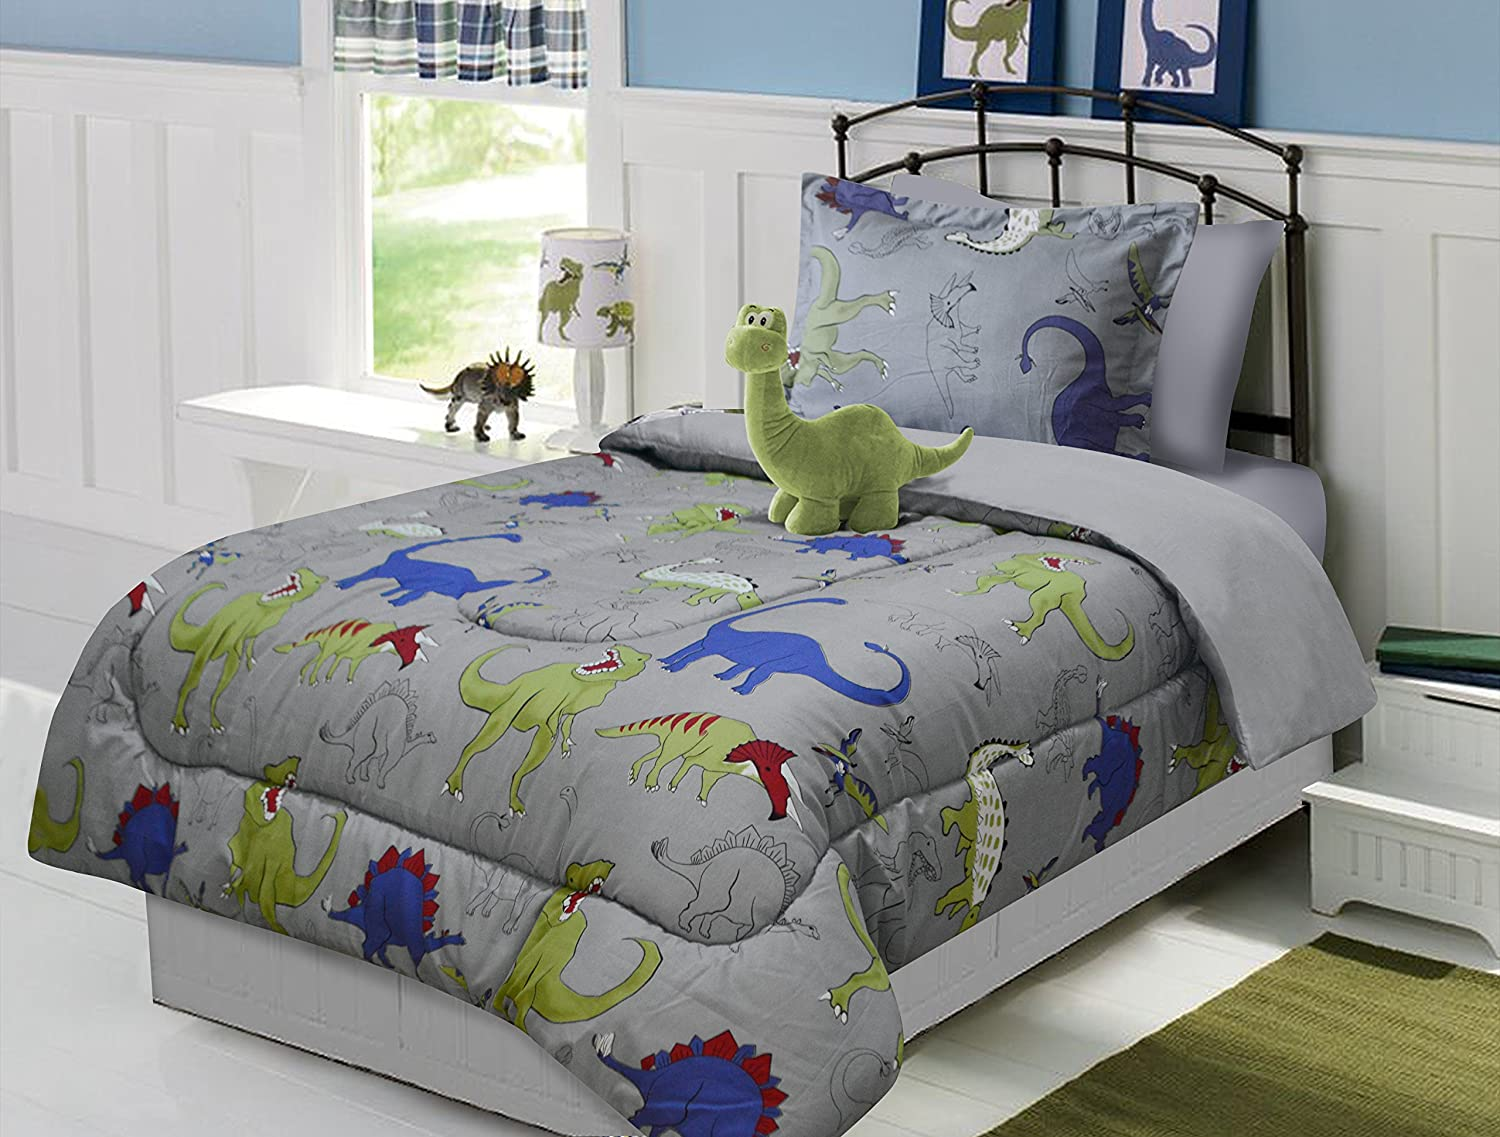 3 Piece Twin Size Dinosaur Comforter Set with Furry Friend